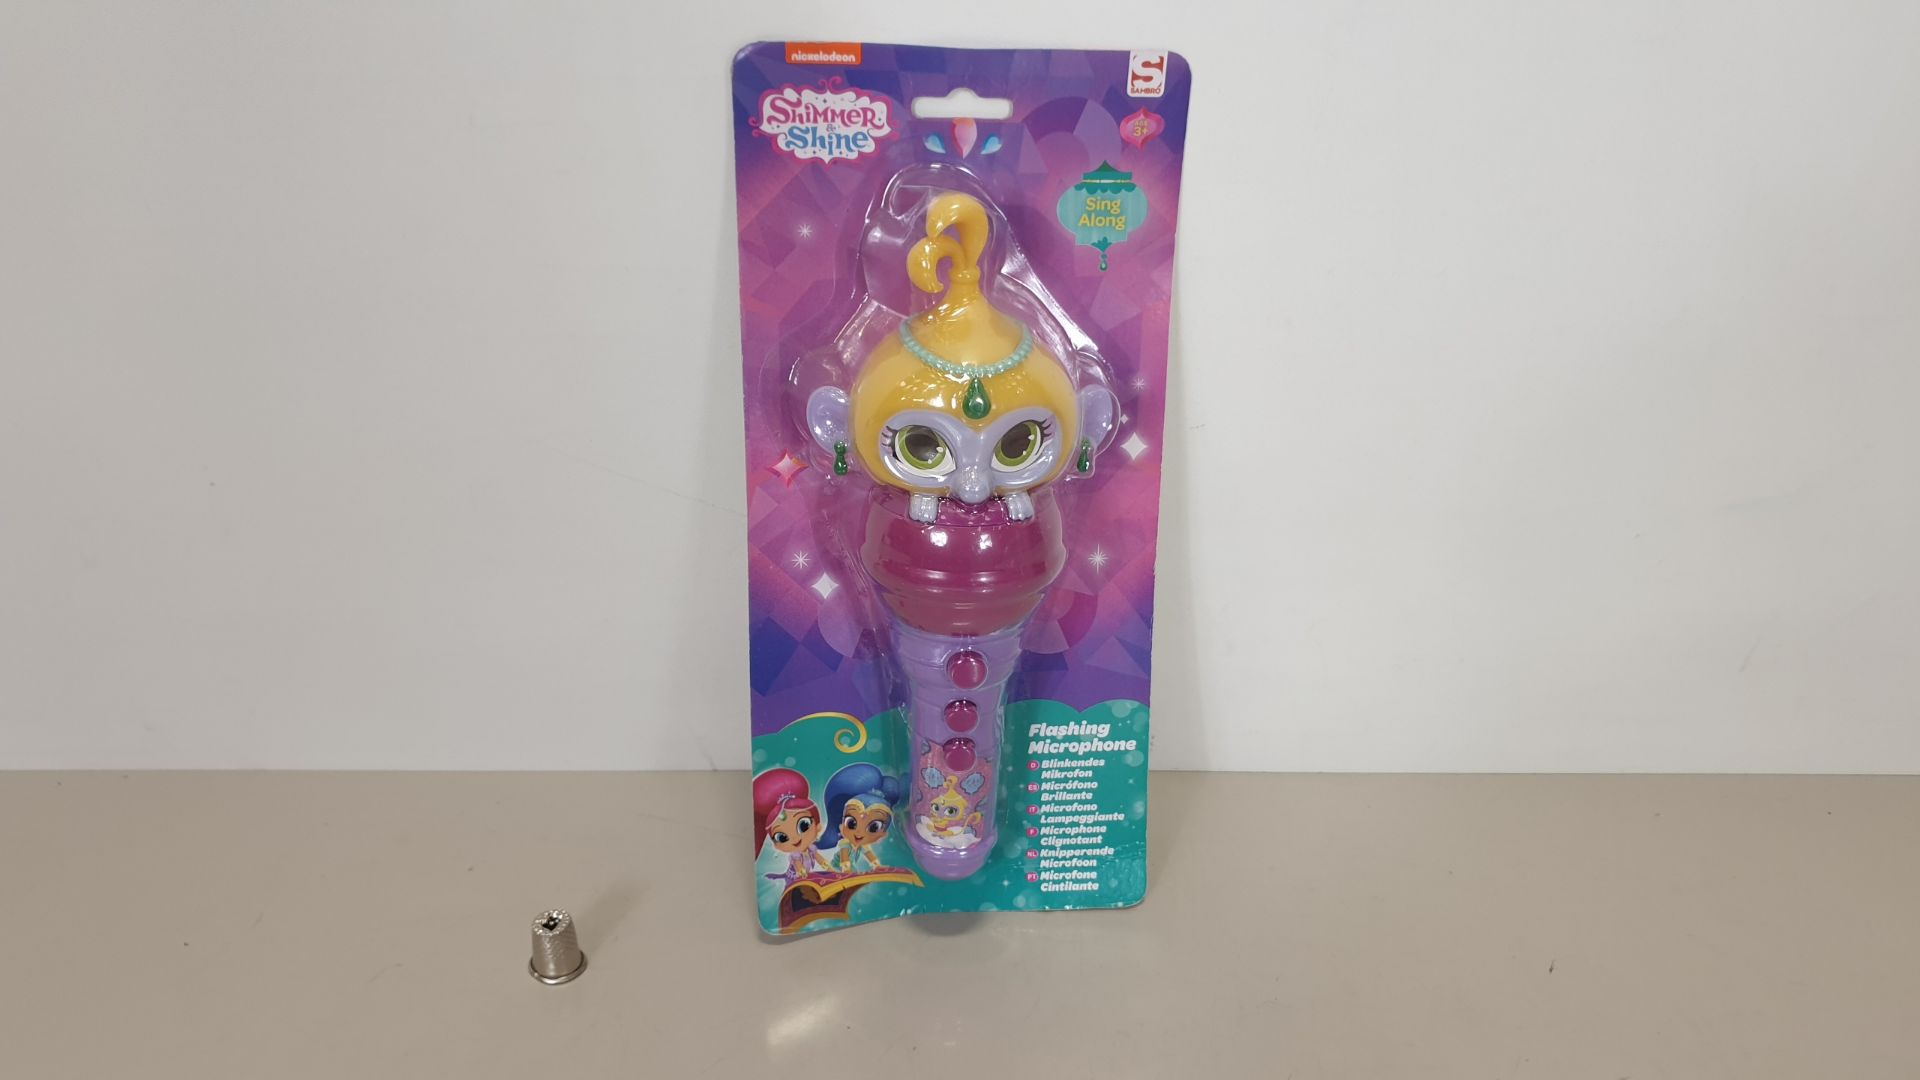 Lot 10 - 96 X BRAND NEW NICKELODEON SHIMMER AND SHINE SING ALONG FLASHING MICROPHONE - IN 8 BOXES